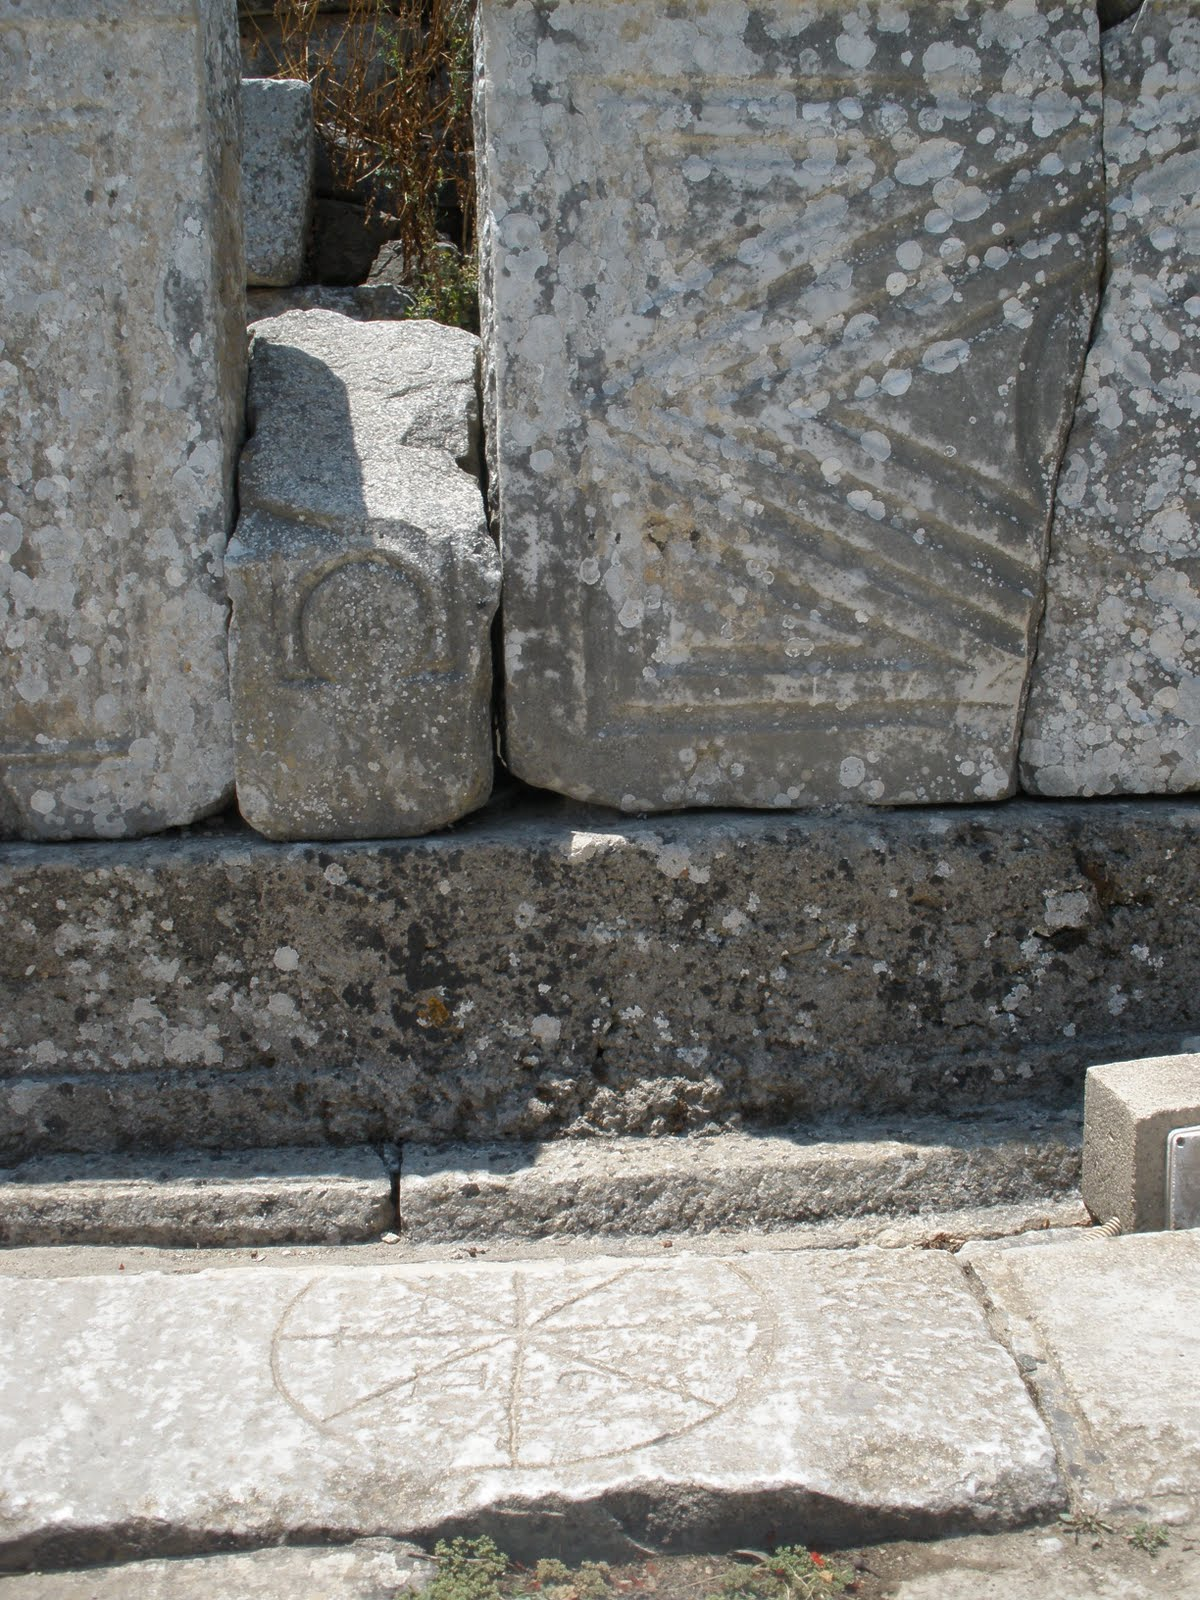 Rota carved into the floor tiles of the Marble Road in Ephesus, Turkey. Photo: Juan Carlos Campos, July, 2011.